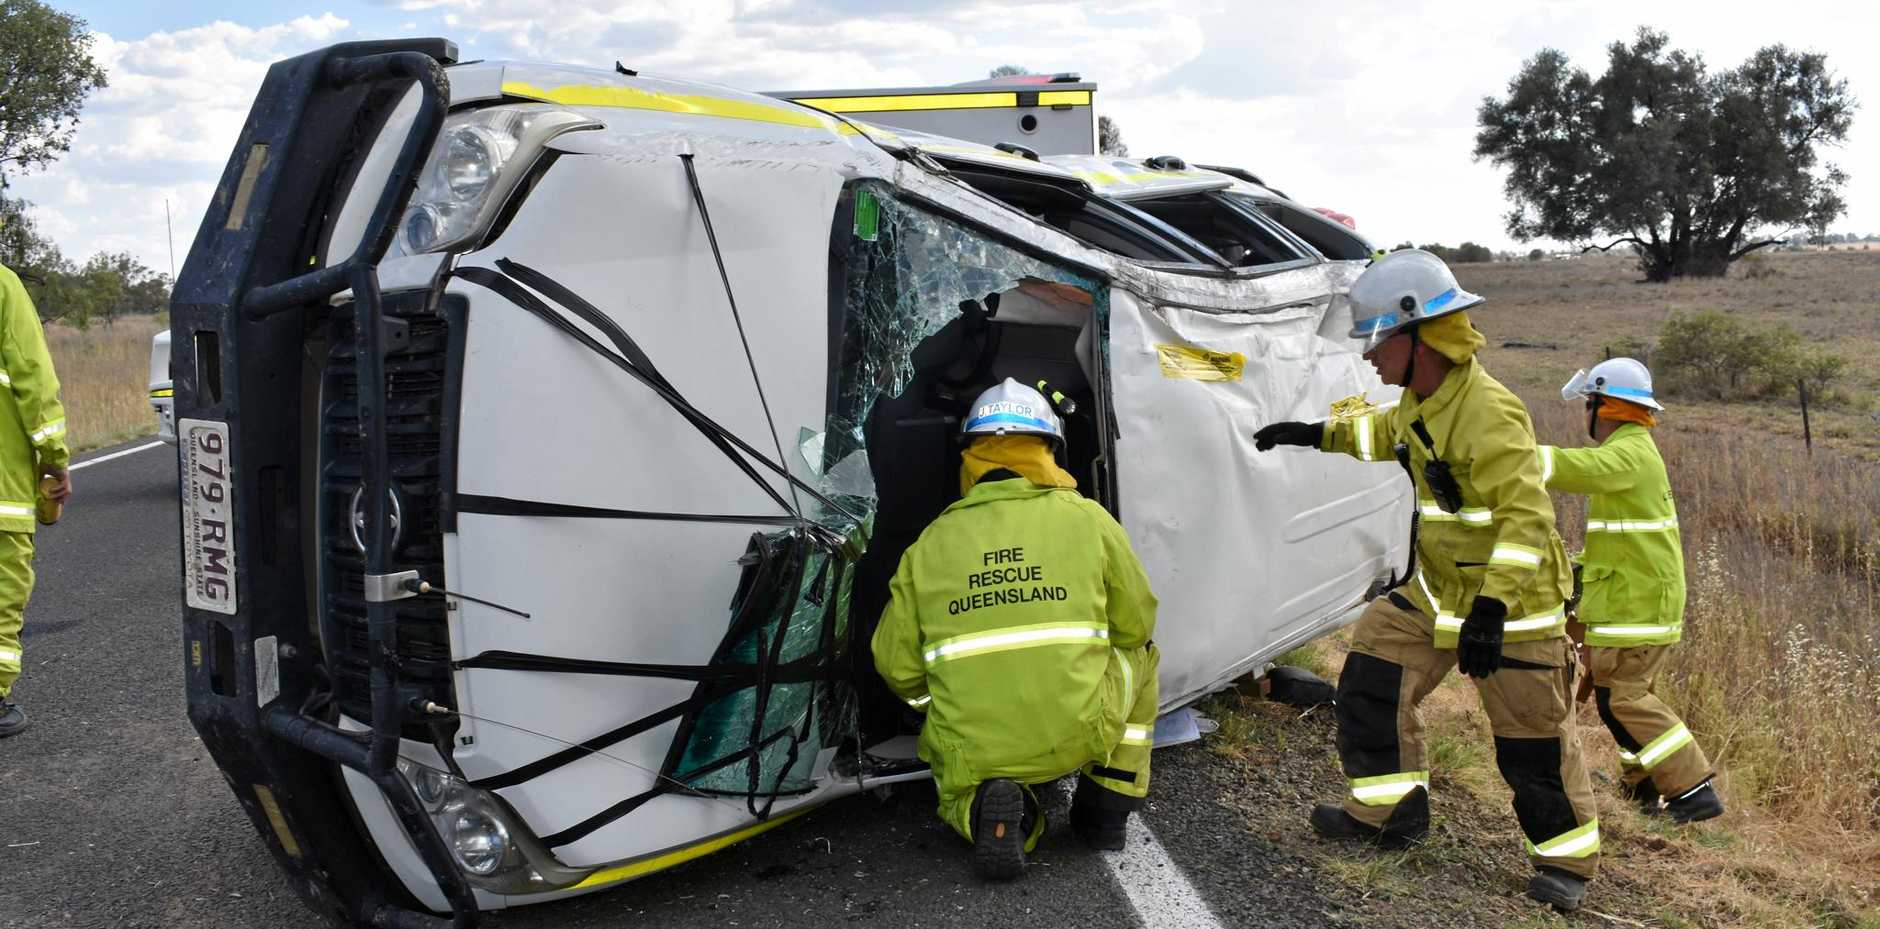 Emergency services attended a single-vehicle crash just outside of Roma this afternoon.